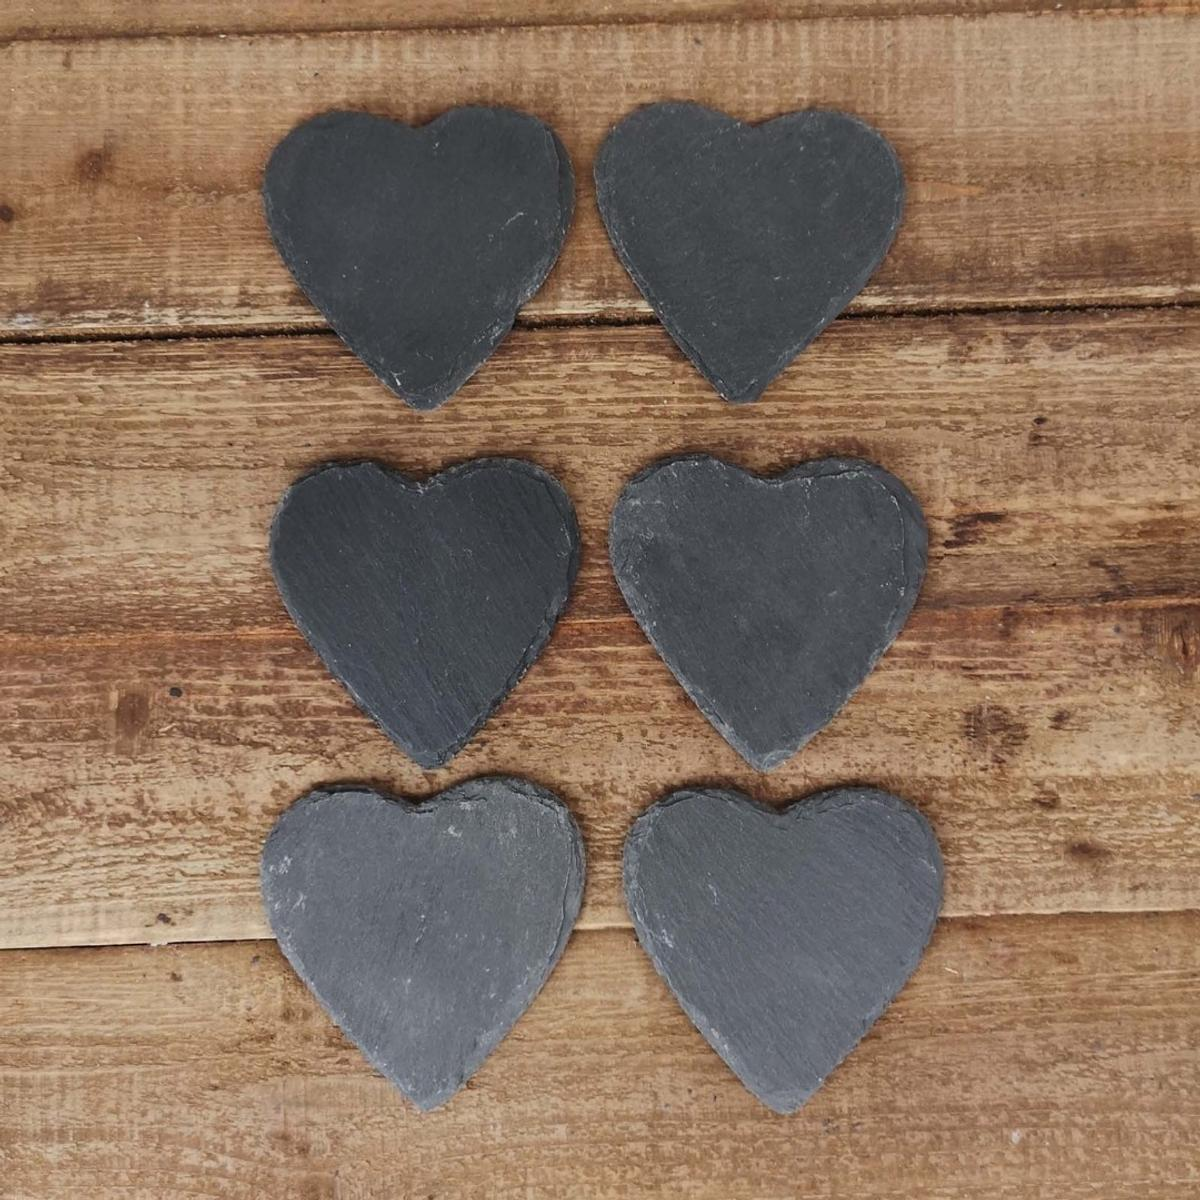 * VERY HIGH QUALITY LUXURY / BRAND NEW / FREE ROYAL MAIL DELIVERY !!! . * CHARMING / STYLISH / PRETTY / FABULOUS / SHABBY CHIC DESIGN & LOOK . * IDEAL FOR HOME DECOR - USE / B & B DECOR - USE / CAFE DECOR - USE / E.T.C. * FEATURES , ( Set of 6 natural slate love heart shape coasters feature anti slip pads to protect your table surfaces and are the ideal addition when complimenting various table settings.Made from natural slate Set of coasters Love Heart Shaped Heat resistance Anti-slip rubber pads on the bottom Dimensions10 x 10 x 0.5 cm MaterialNatural Slate ). * GREAT PRICE. * BANK TRANSFER ACCEPTED.